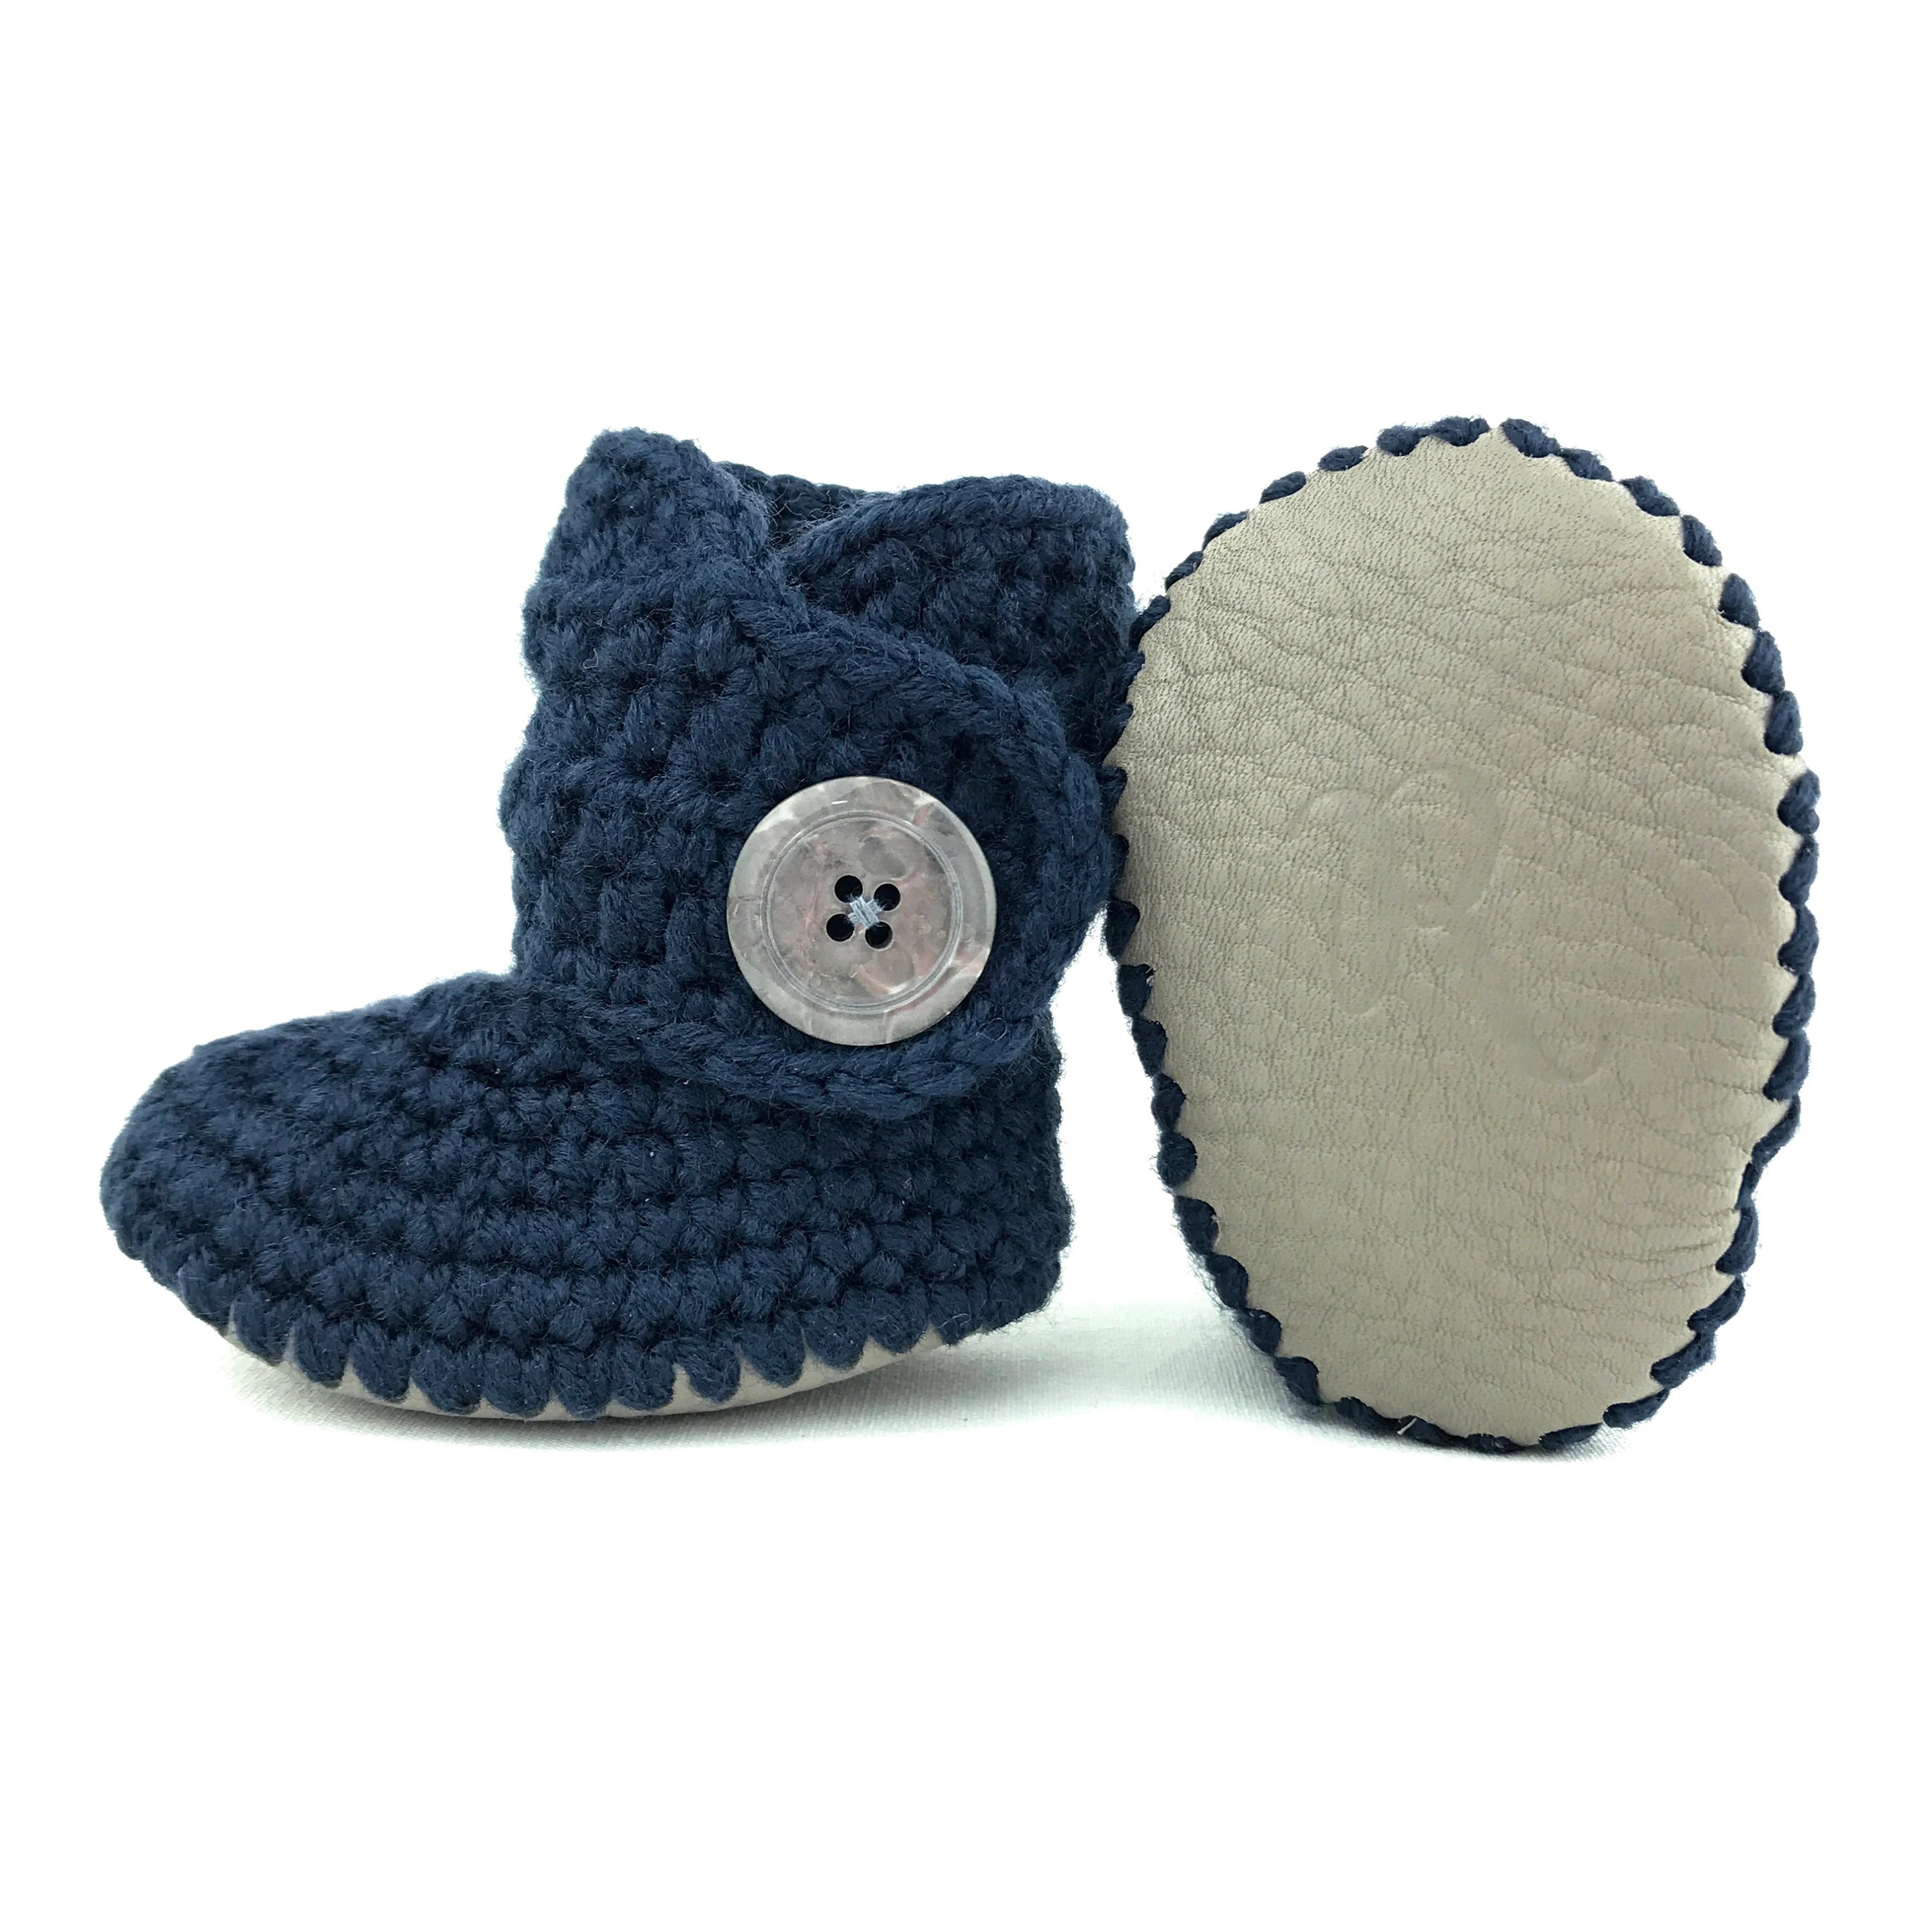 ab00dc3c Baby Boy Shoes Navy Knit Booties Gray Leather Crib Shoes Knitted Boots  Infant Shoes For Boy Winter Girl Clothes 3 6 Months Soft Soles